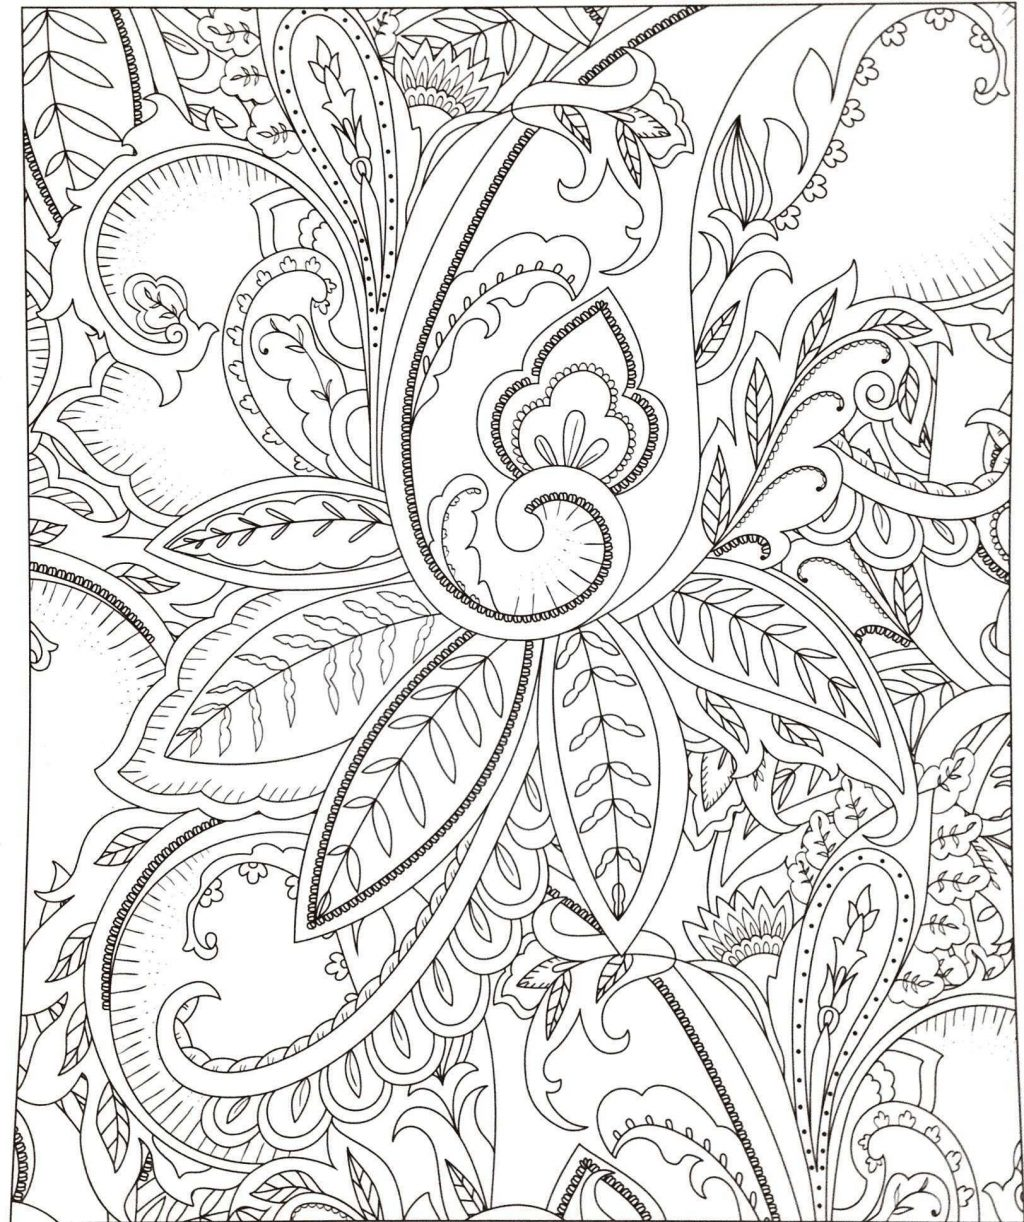 Coloring Pages ~ Dr Seuss Coloring Pages Pdf Luxury Free Printable